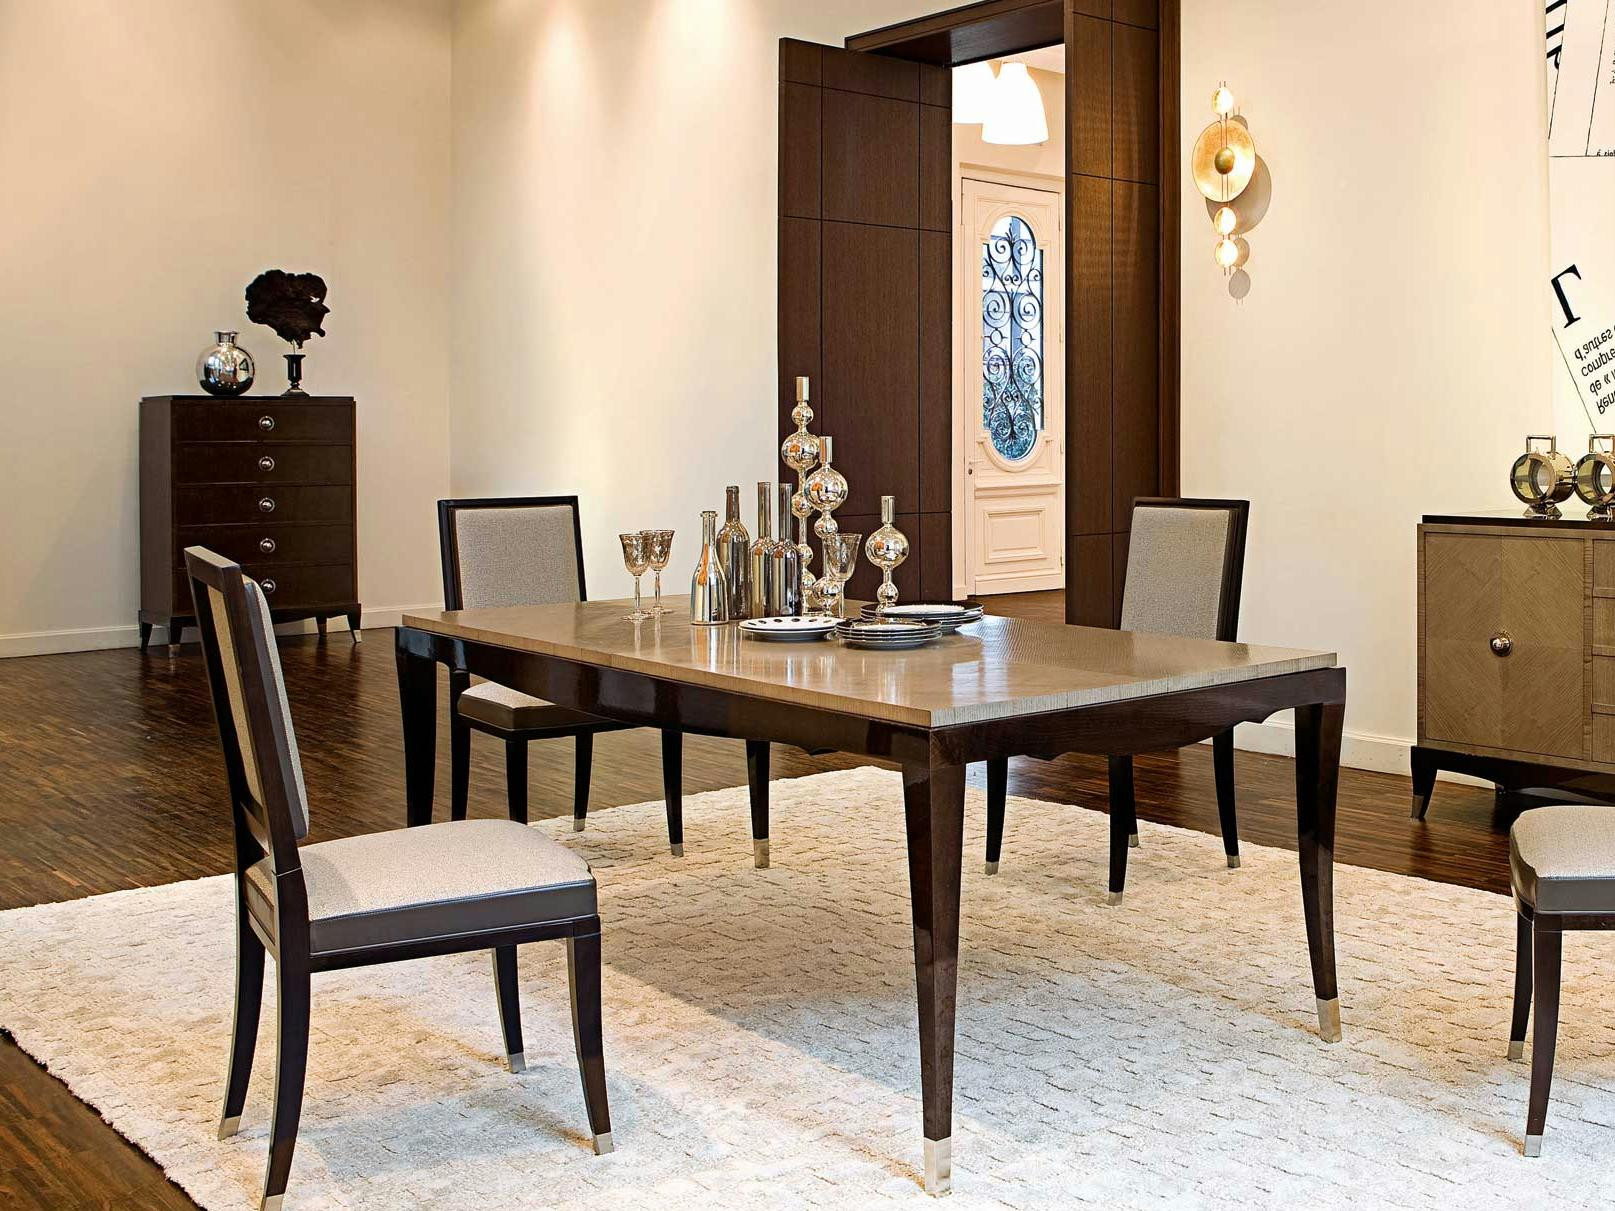 Best ideas about Rugs For Dining Room . Save or Pin Tips for Getting Best Dining Room Area Rugs Now.